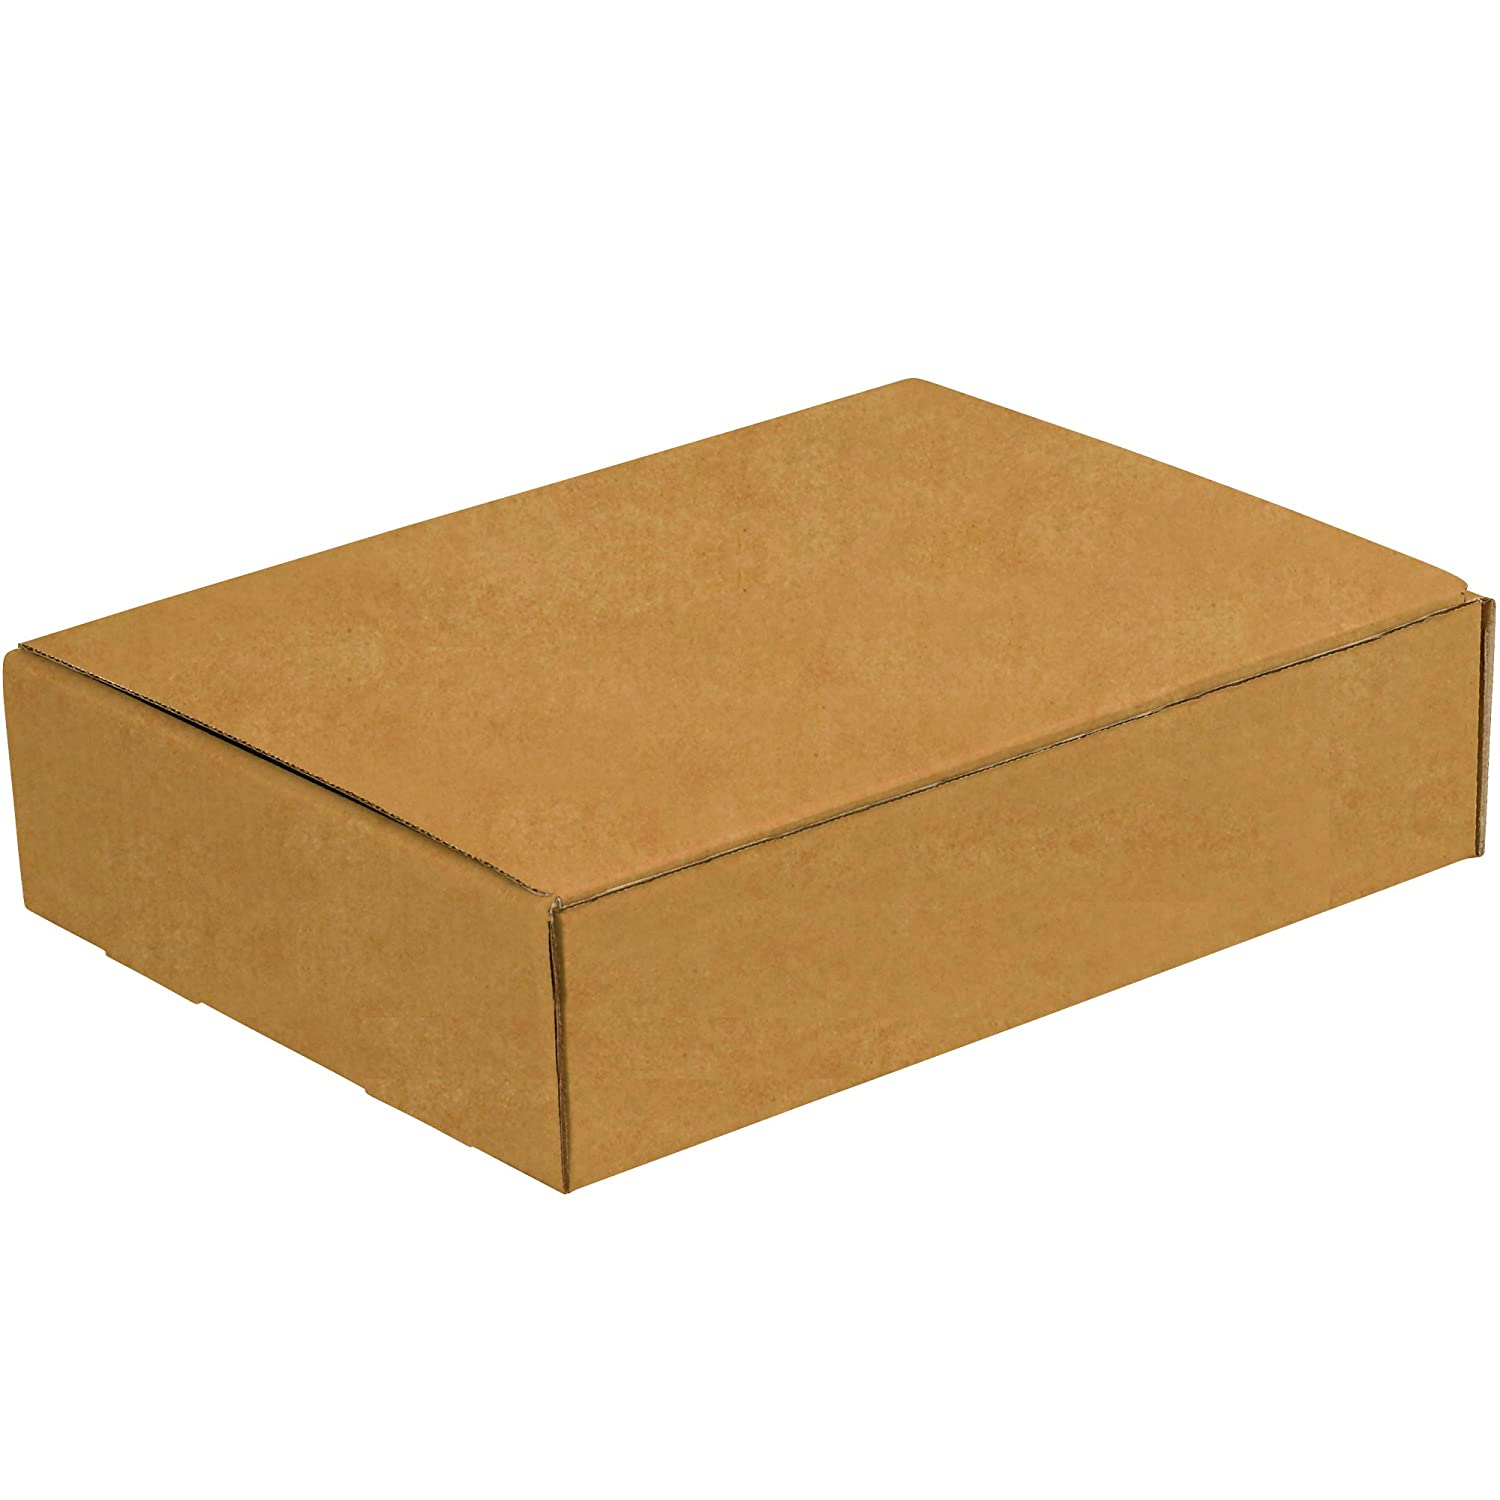 738412a168edf BOX USA BM1073K Corrugated Mailers, 10